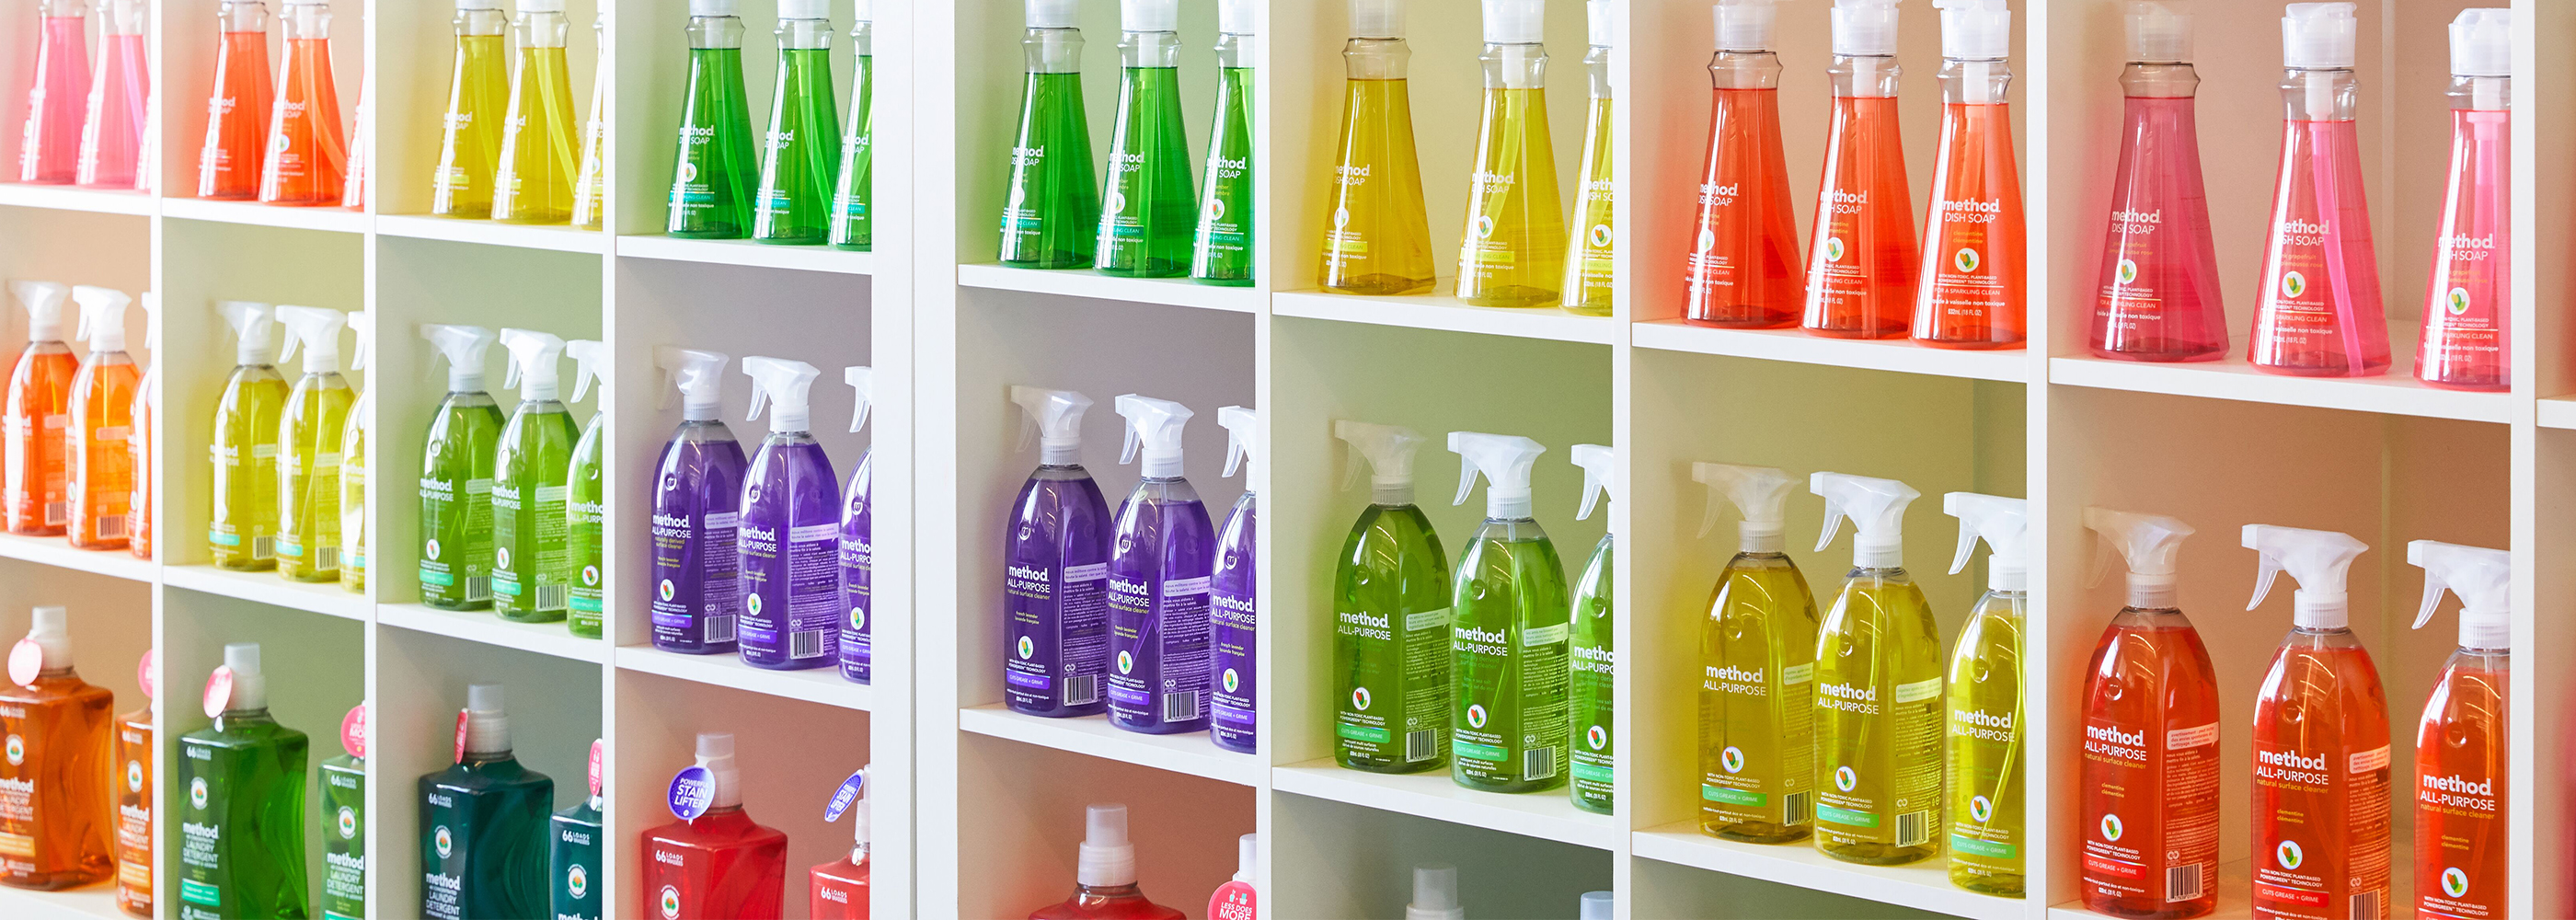 Detail photo of colorful Method products on a shelf.